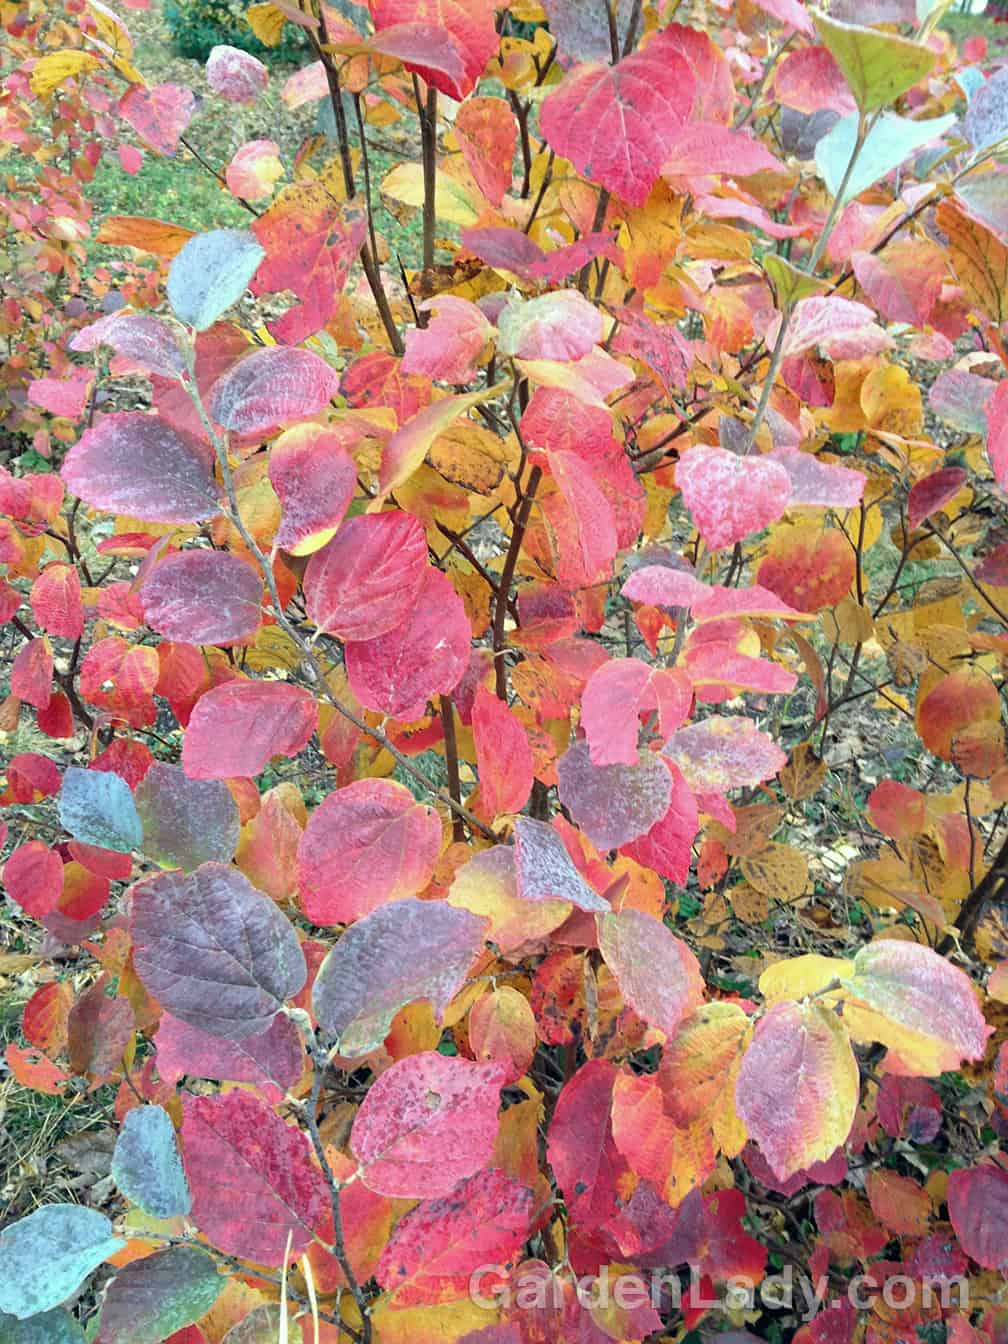 Even as we feel sorry that the days grow shorter, Fothergilla Blue Shadow has the ability to cheer us up.